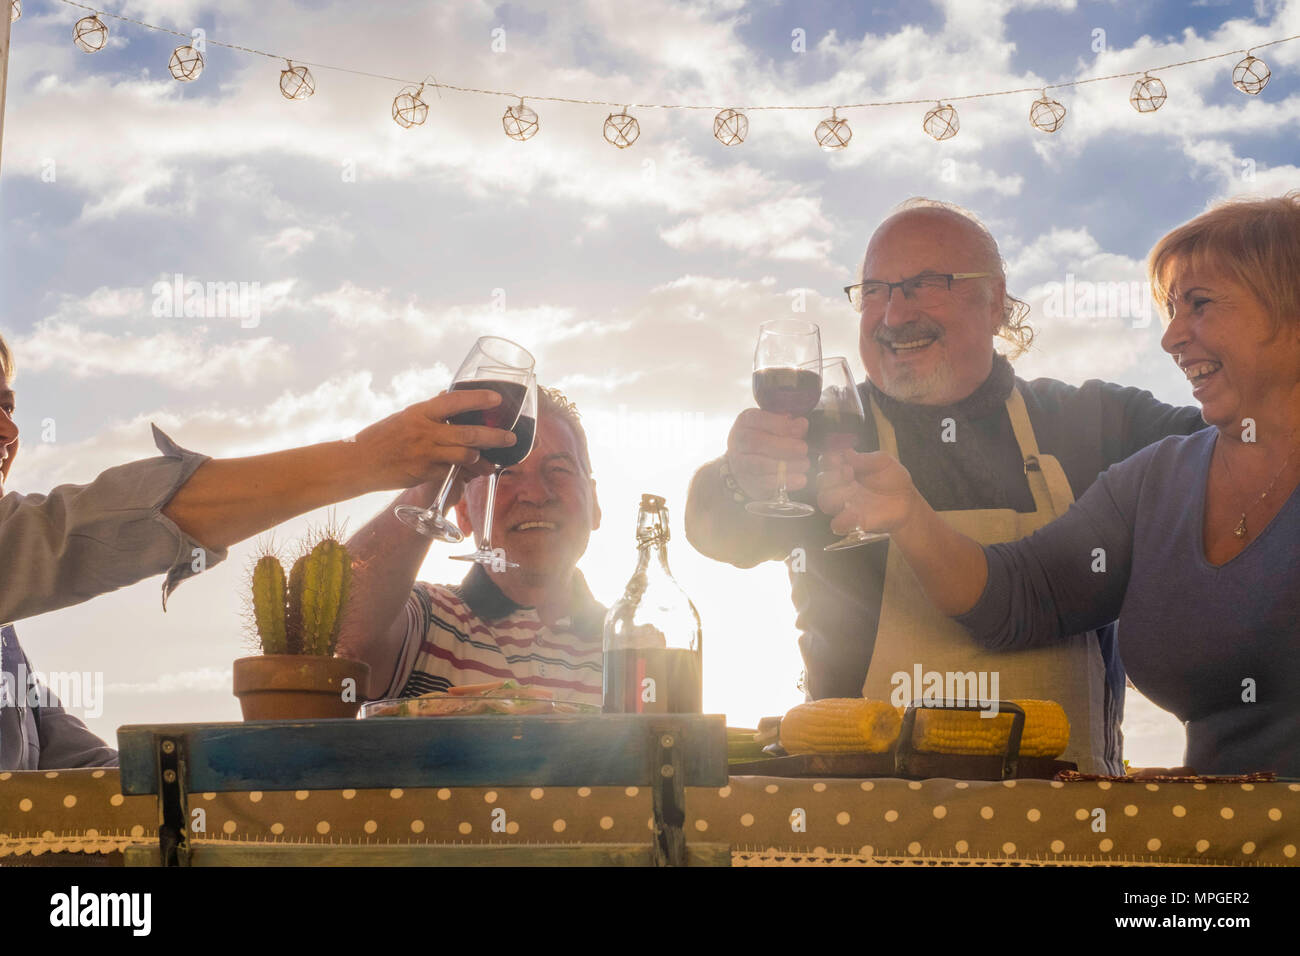 mature men and women cheers with wine outdoor in patio terrace rooftop for celebrate vacation or birthday or event. elderly lifestyle happy day life c - Stock Image